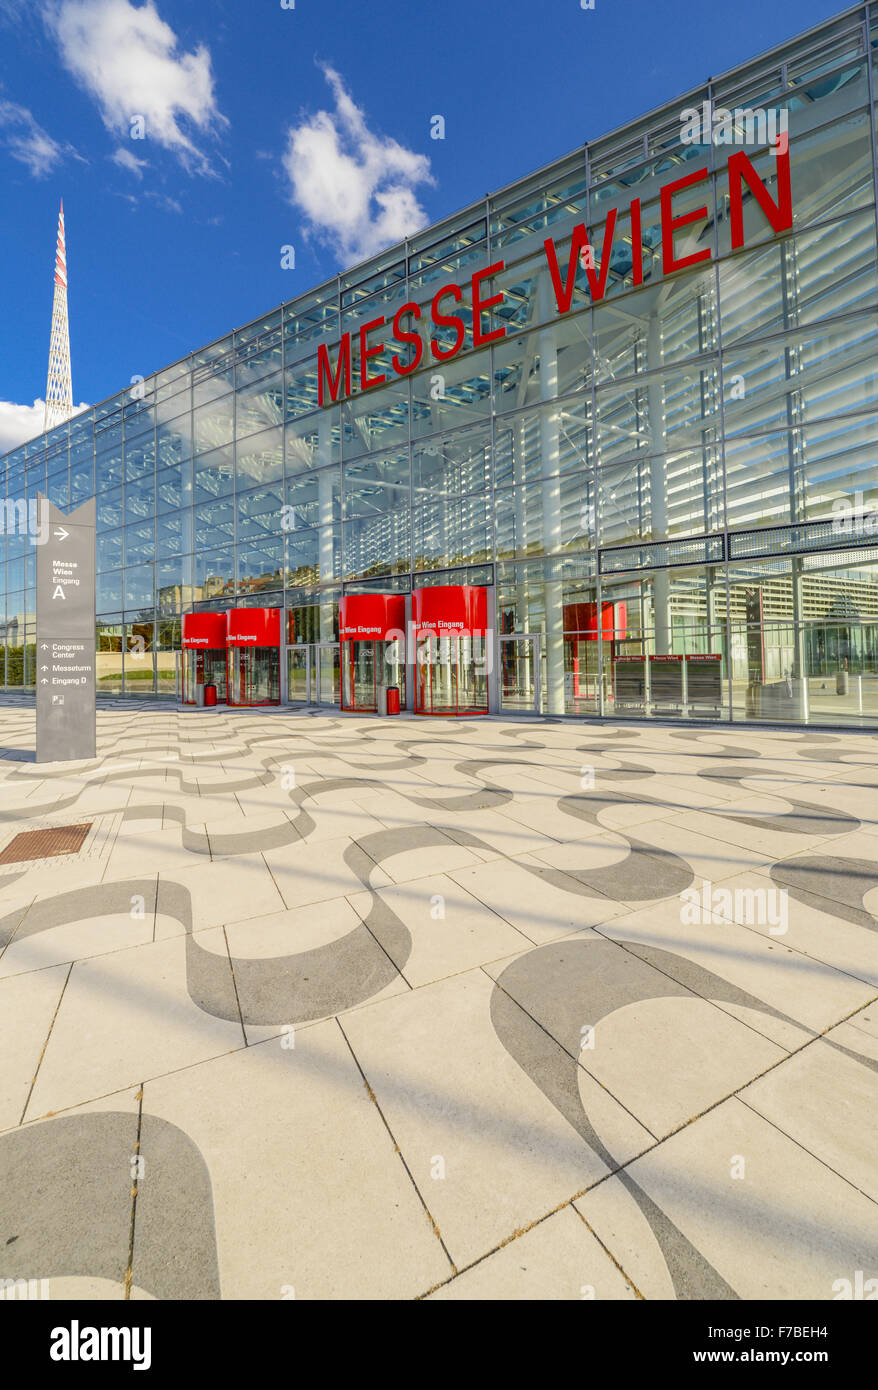 Reed Messe Wien, Vienna Fair, Vienna, Austria, 2. district, fair ground - Stock Image